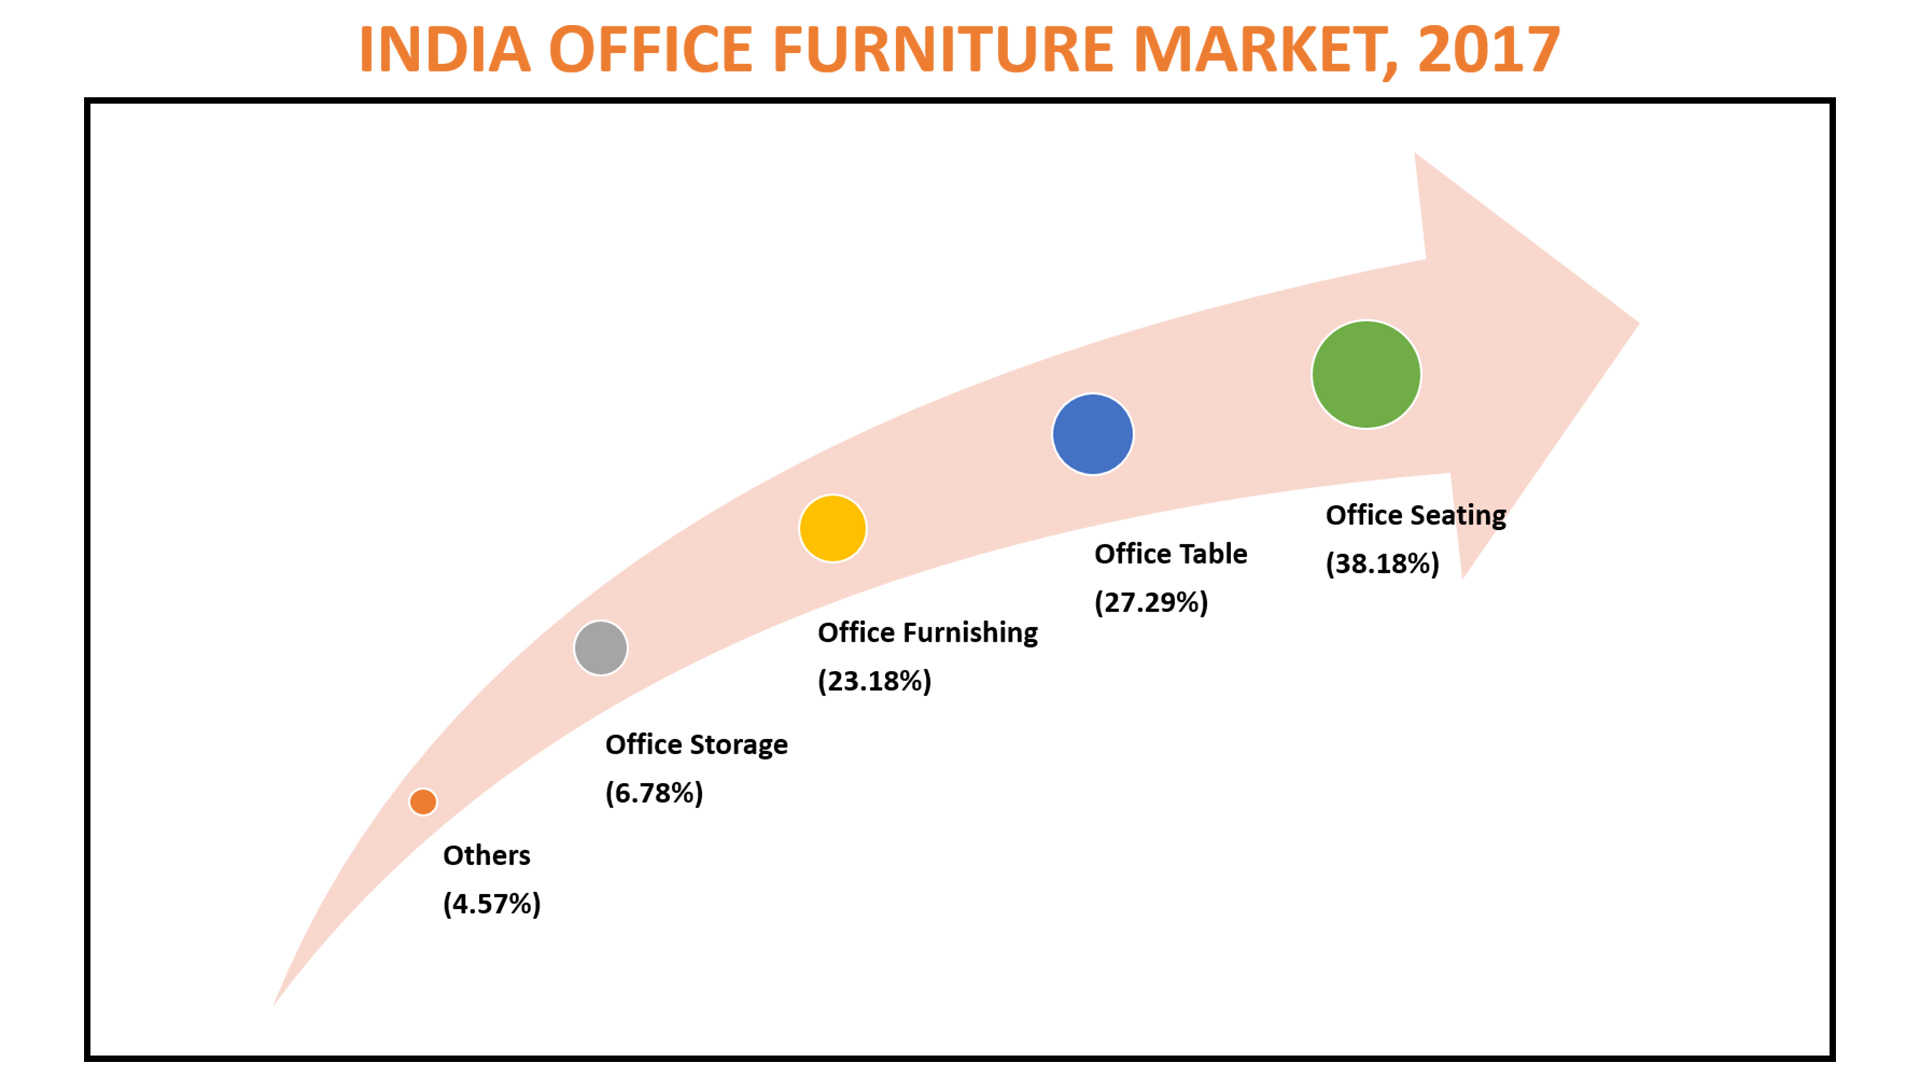 INDIA OFFICE FURNITURE MARKET